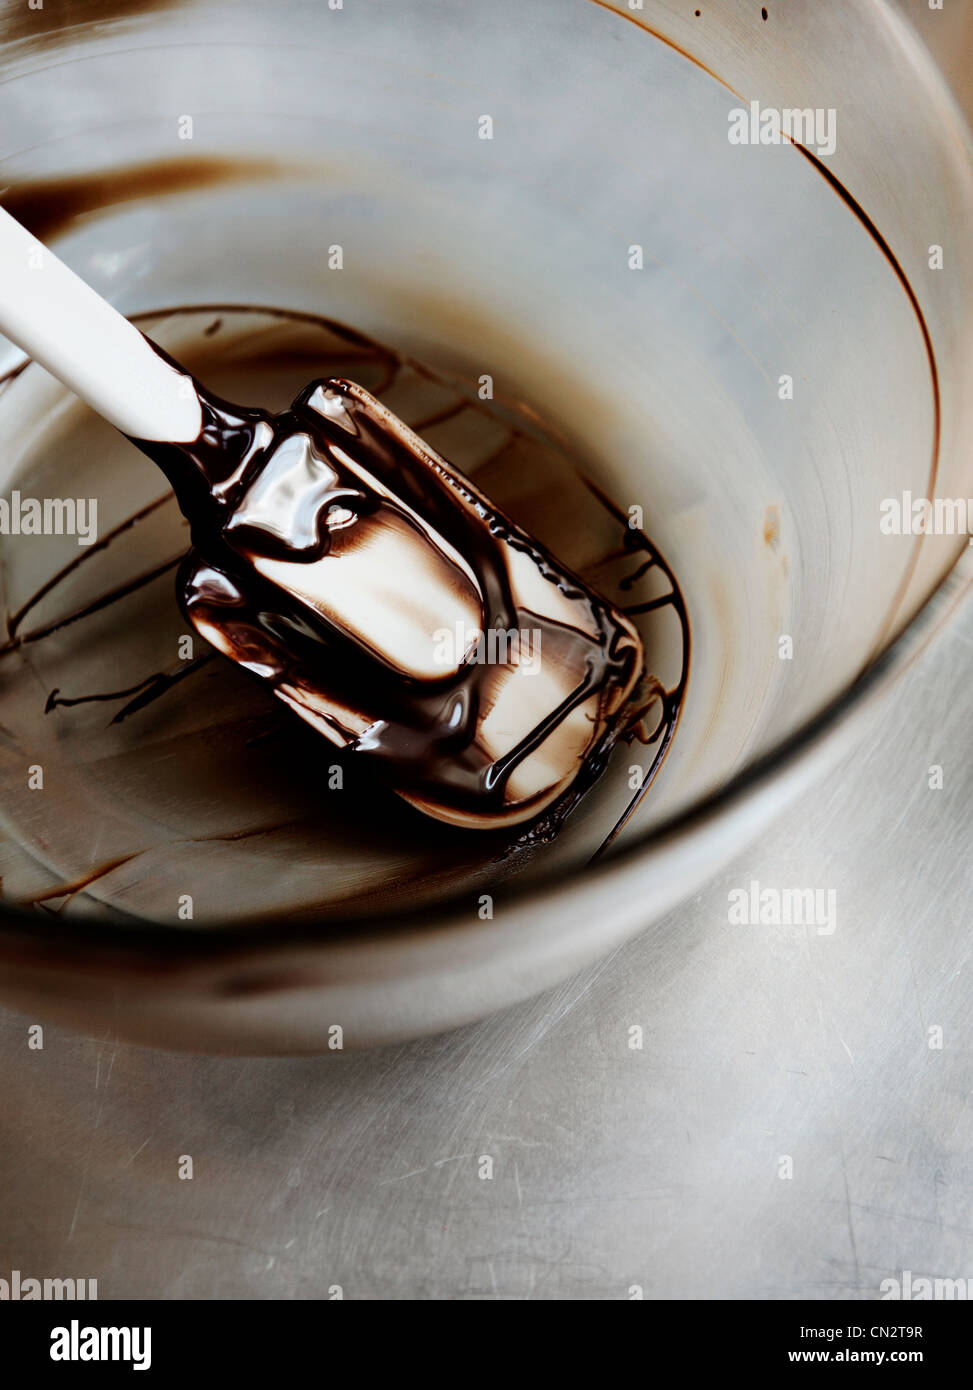 Melted dark chocolate in mixing bowl with spatula - Stock Image